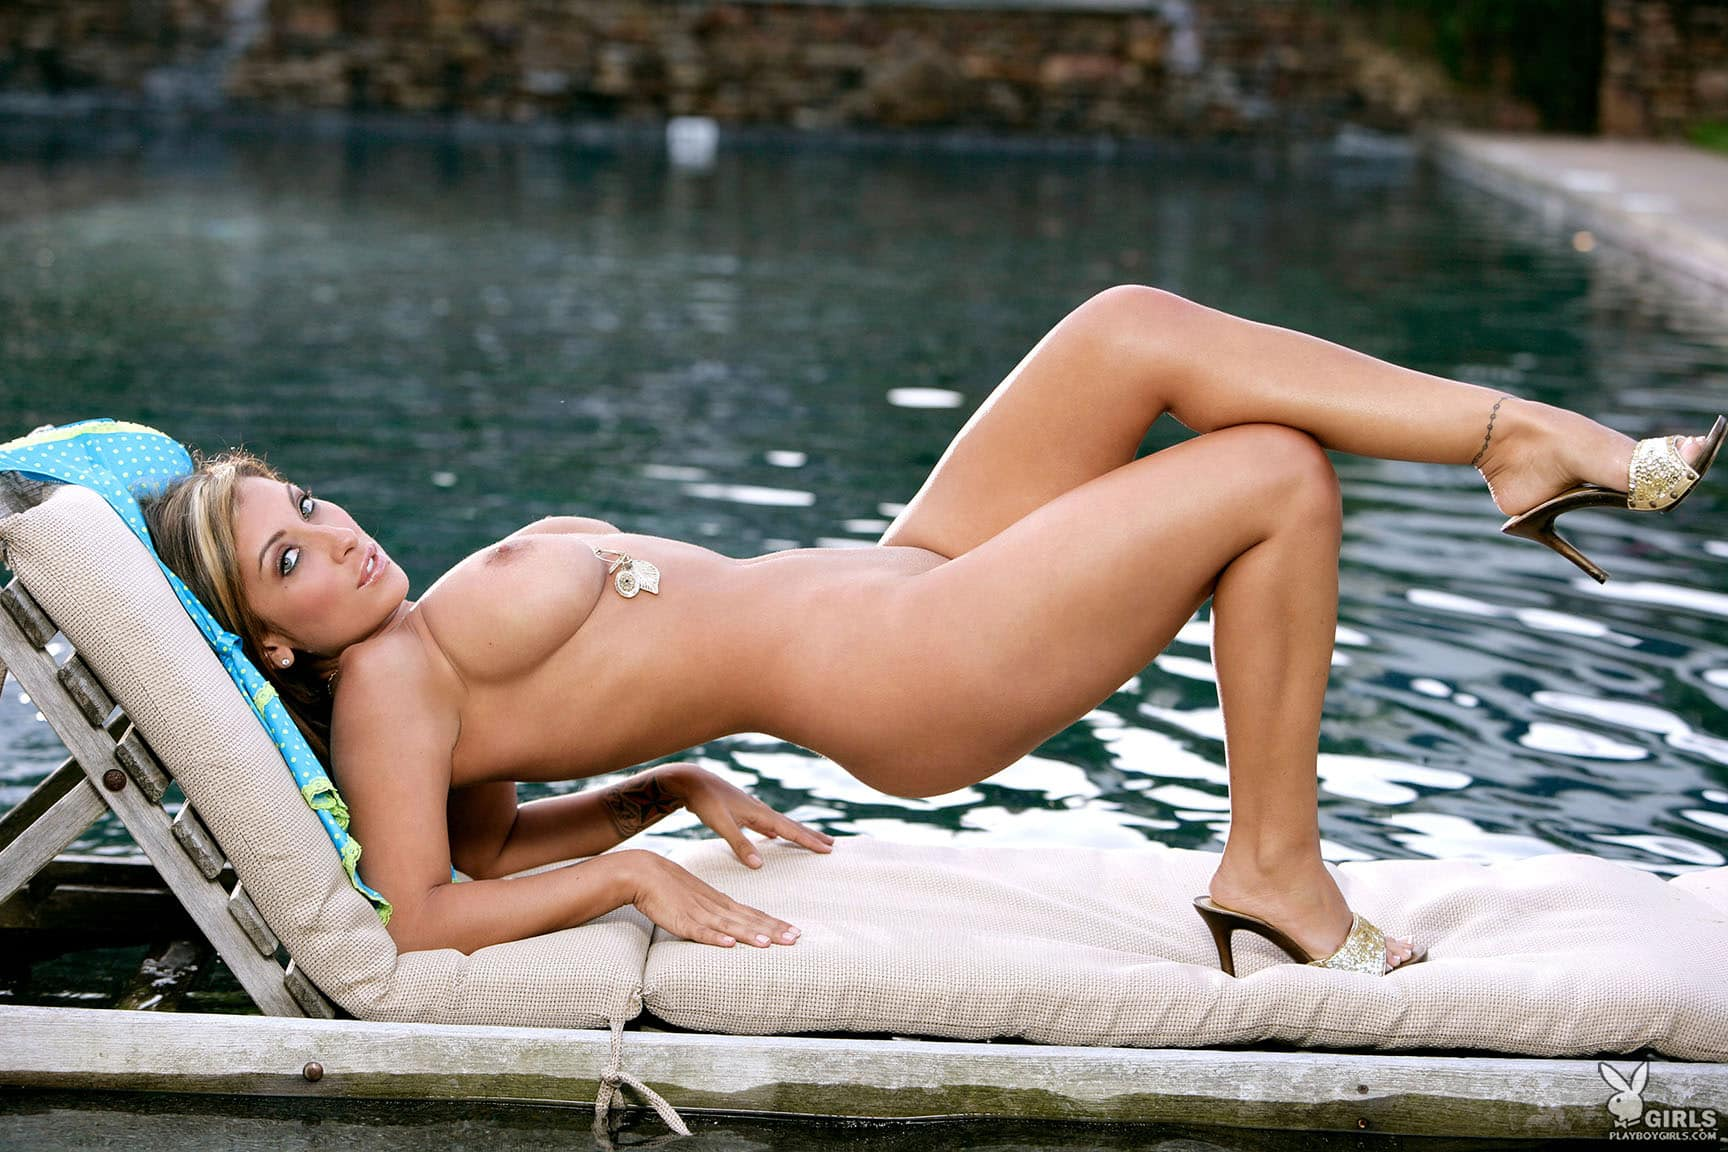 Jessica Canizales stripping lightblue outfit by pool